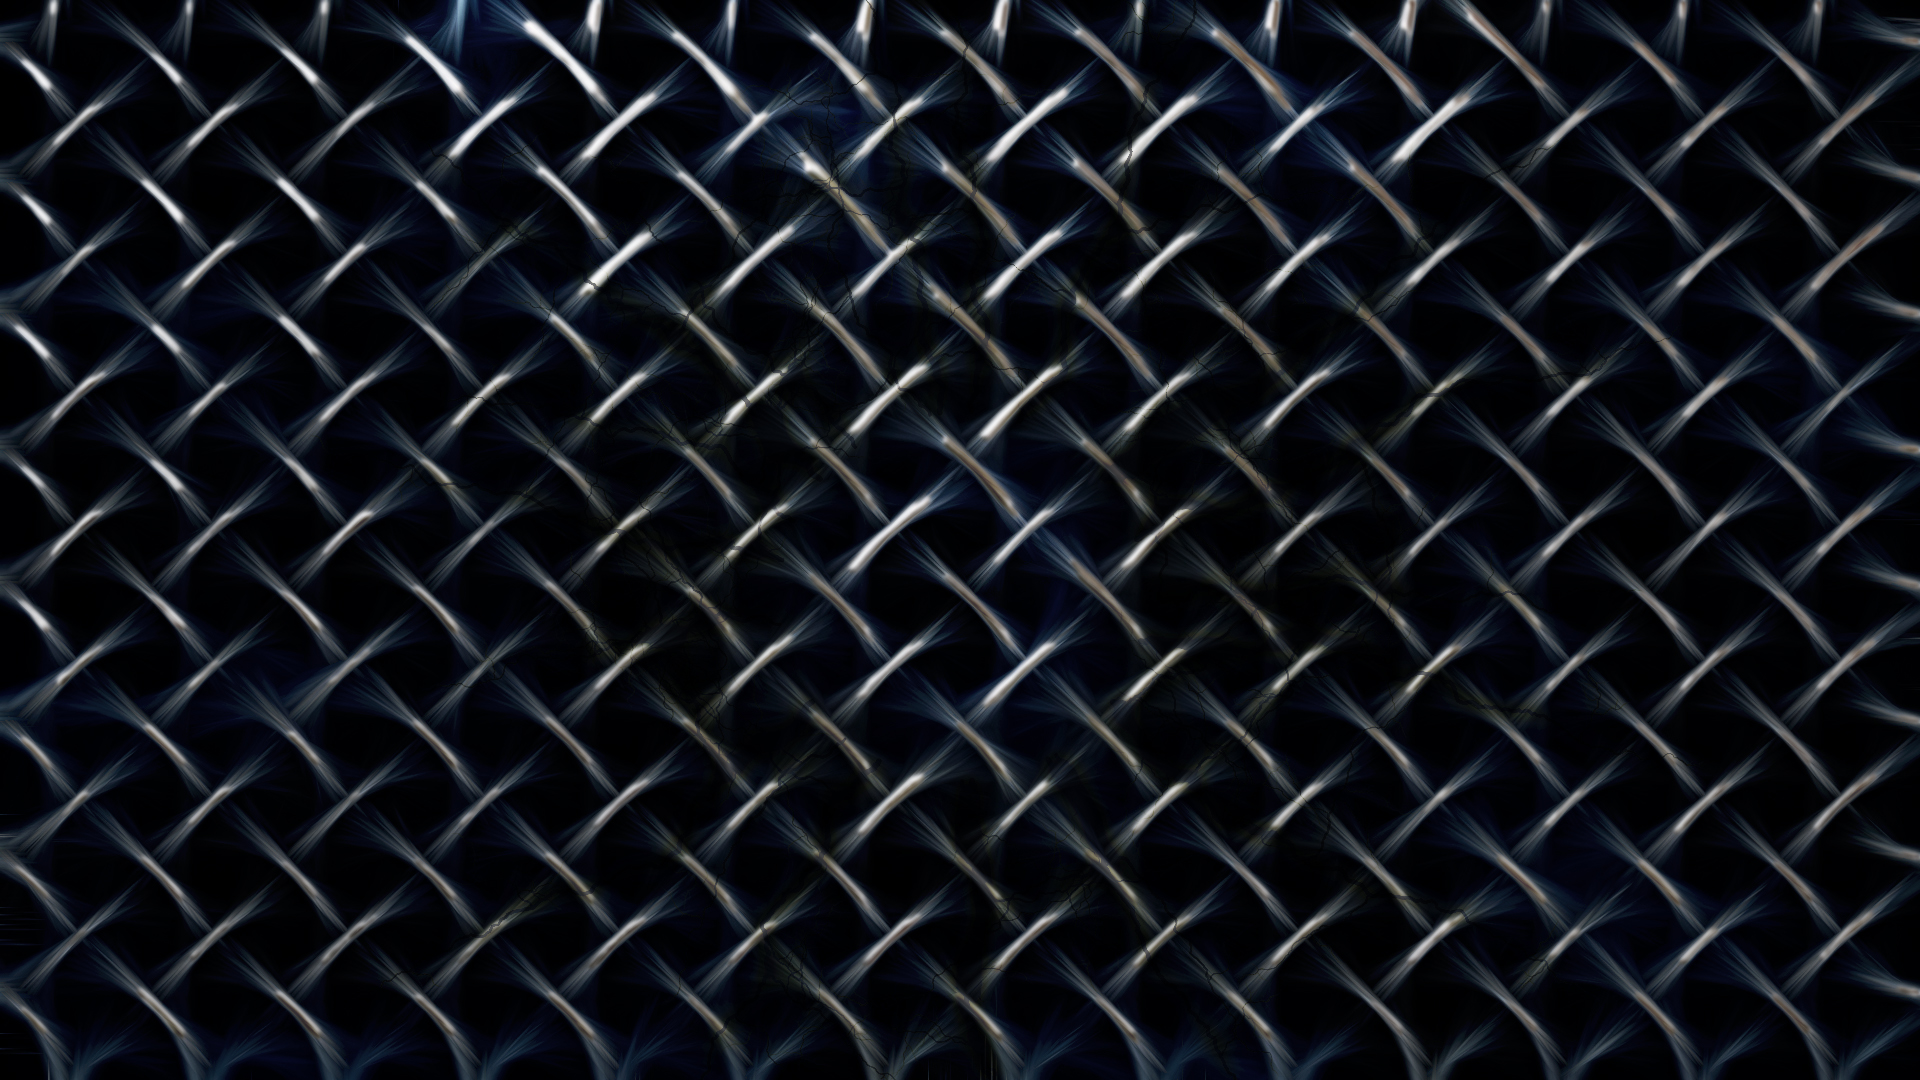 Metal Fence Wallpaper